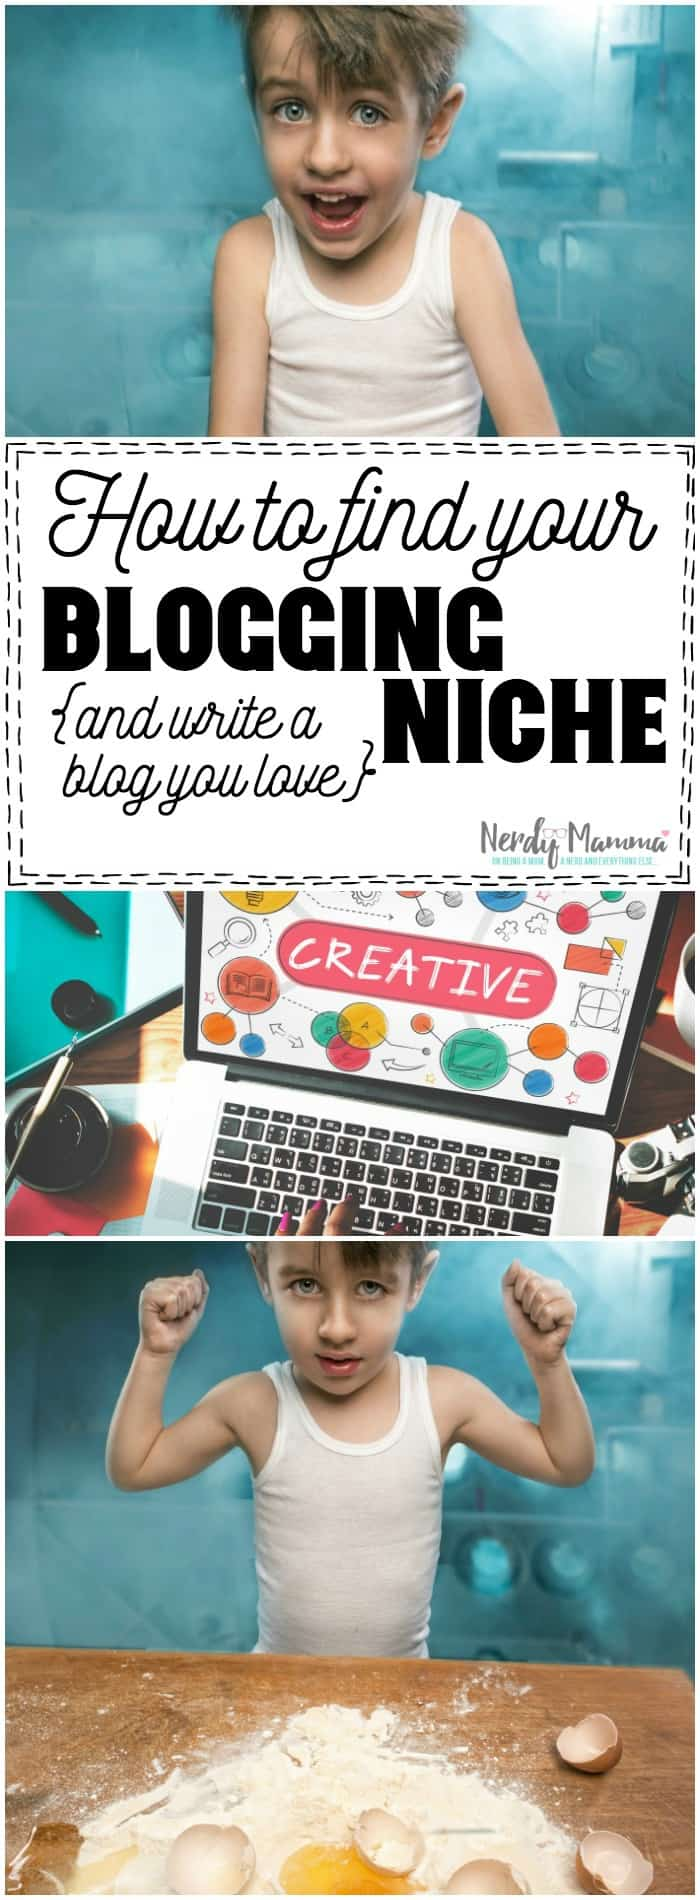 I love this advice for how to find your blog's niche! So simple, but so helpful...